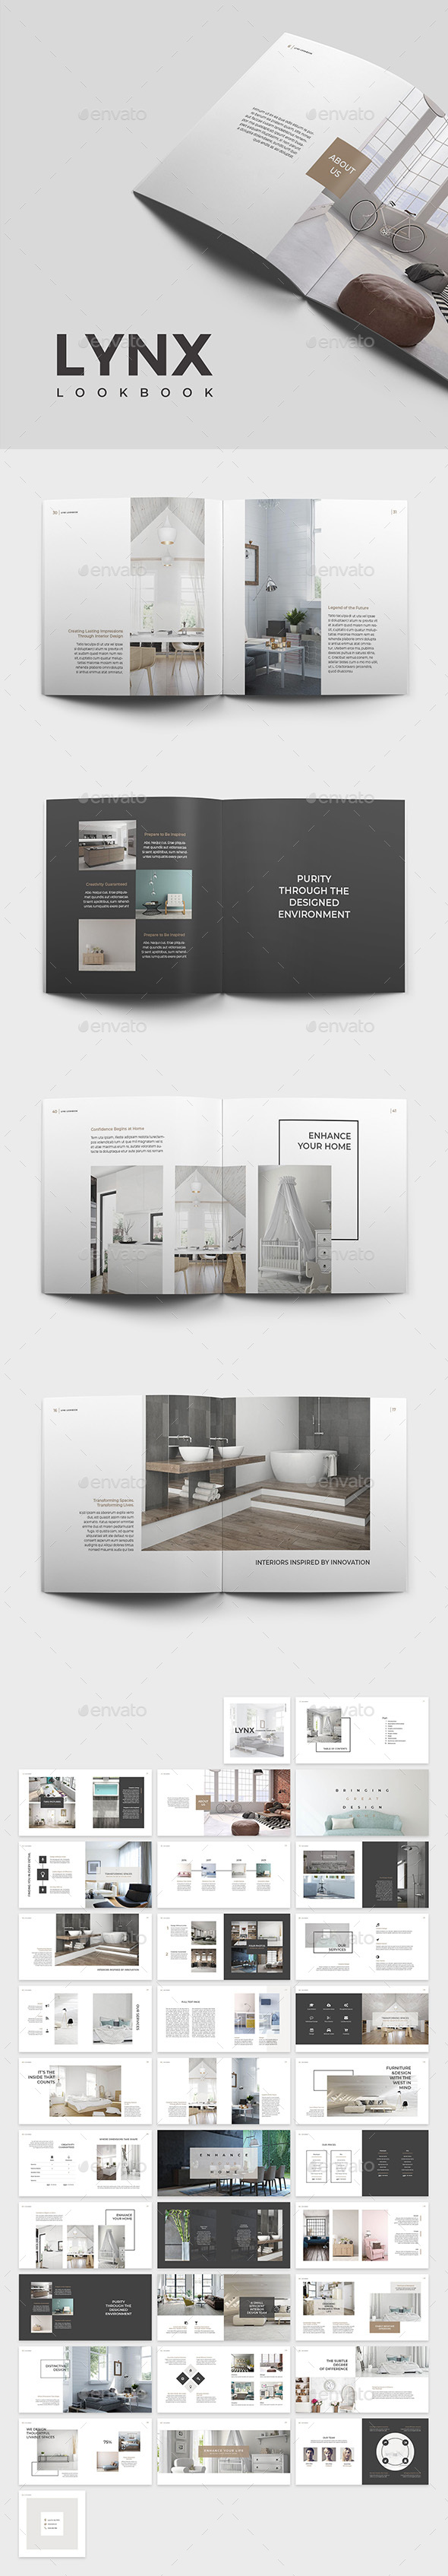 Lynx Lookbook Template - Catalogs Brochures